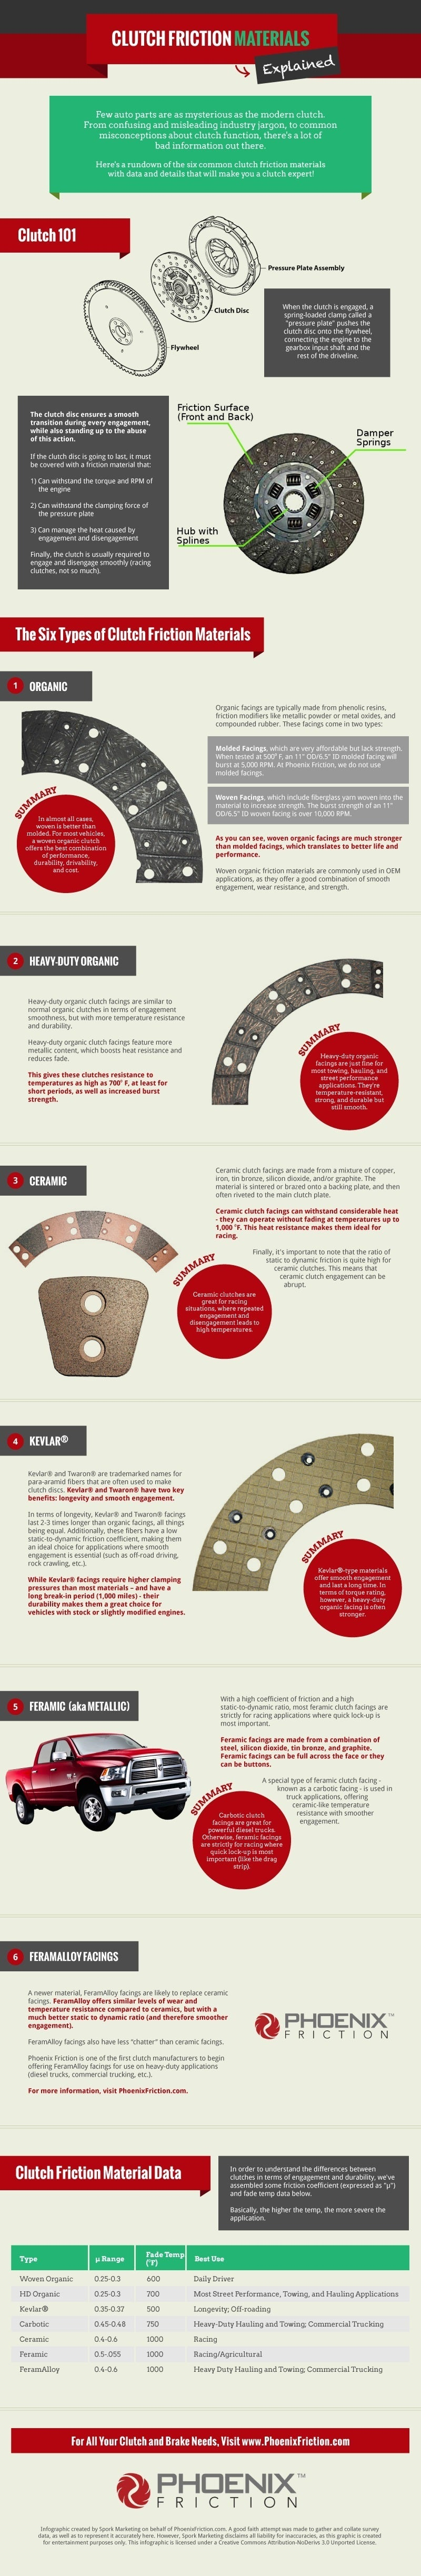 Clutch-Friction-Material-Infographic (1)